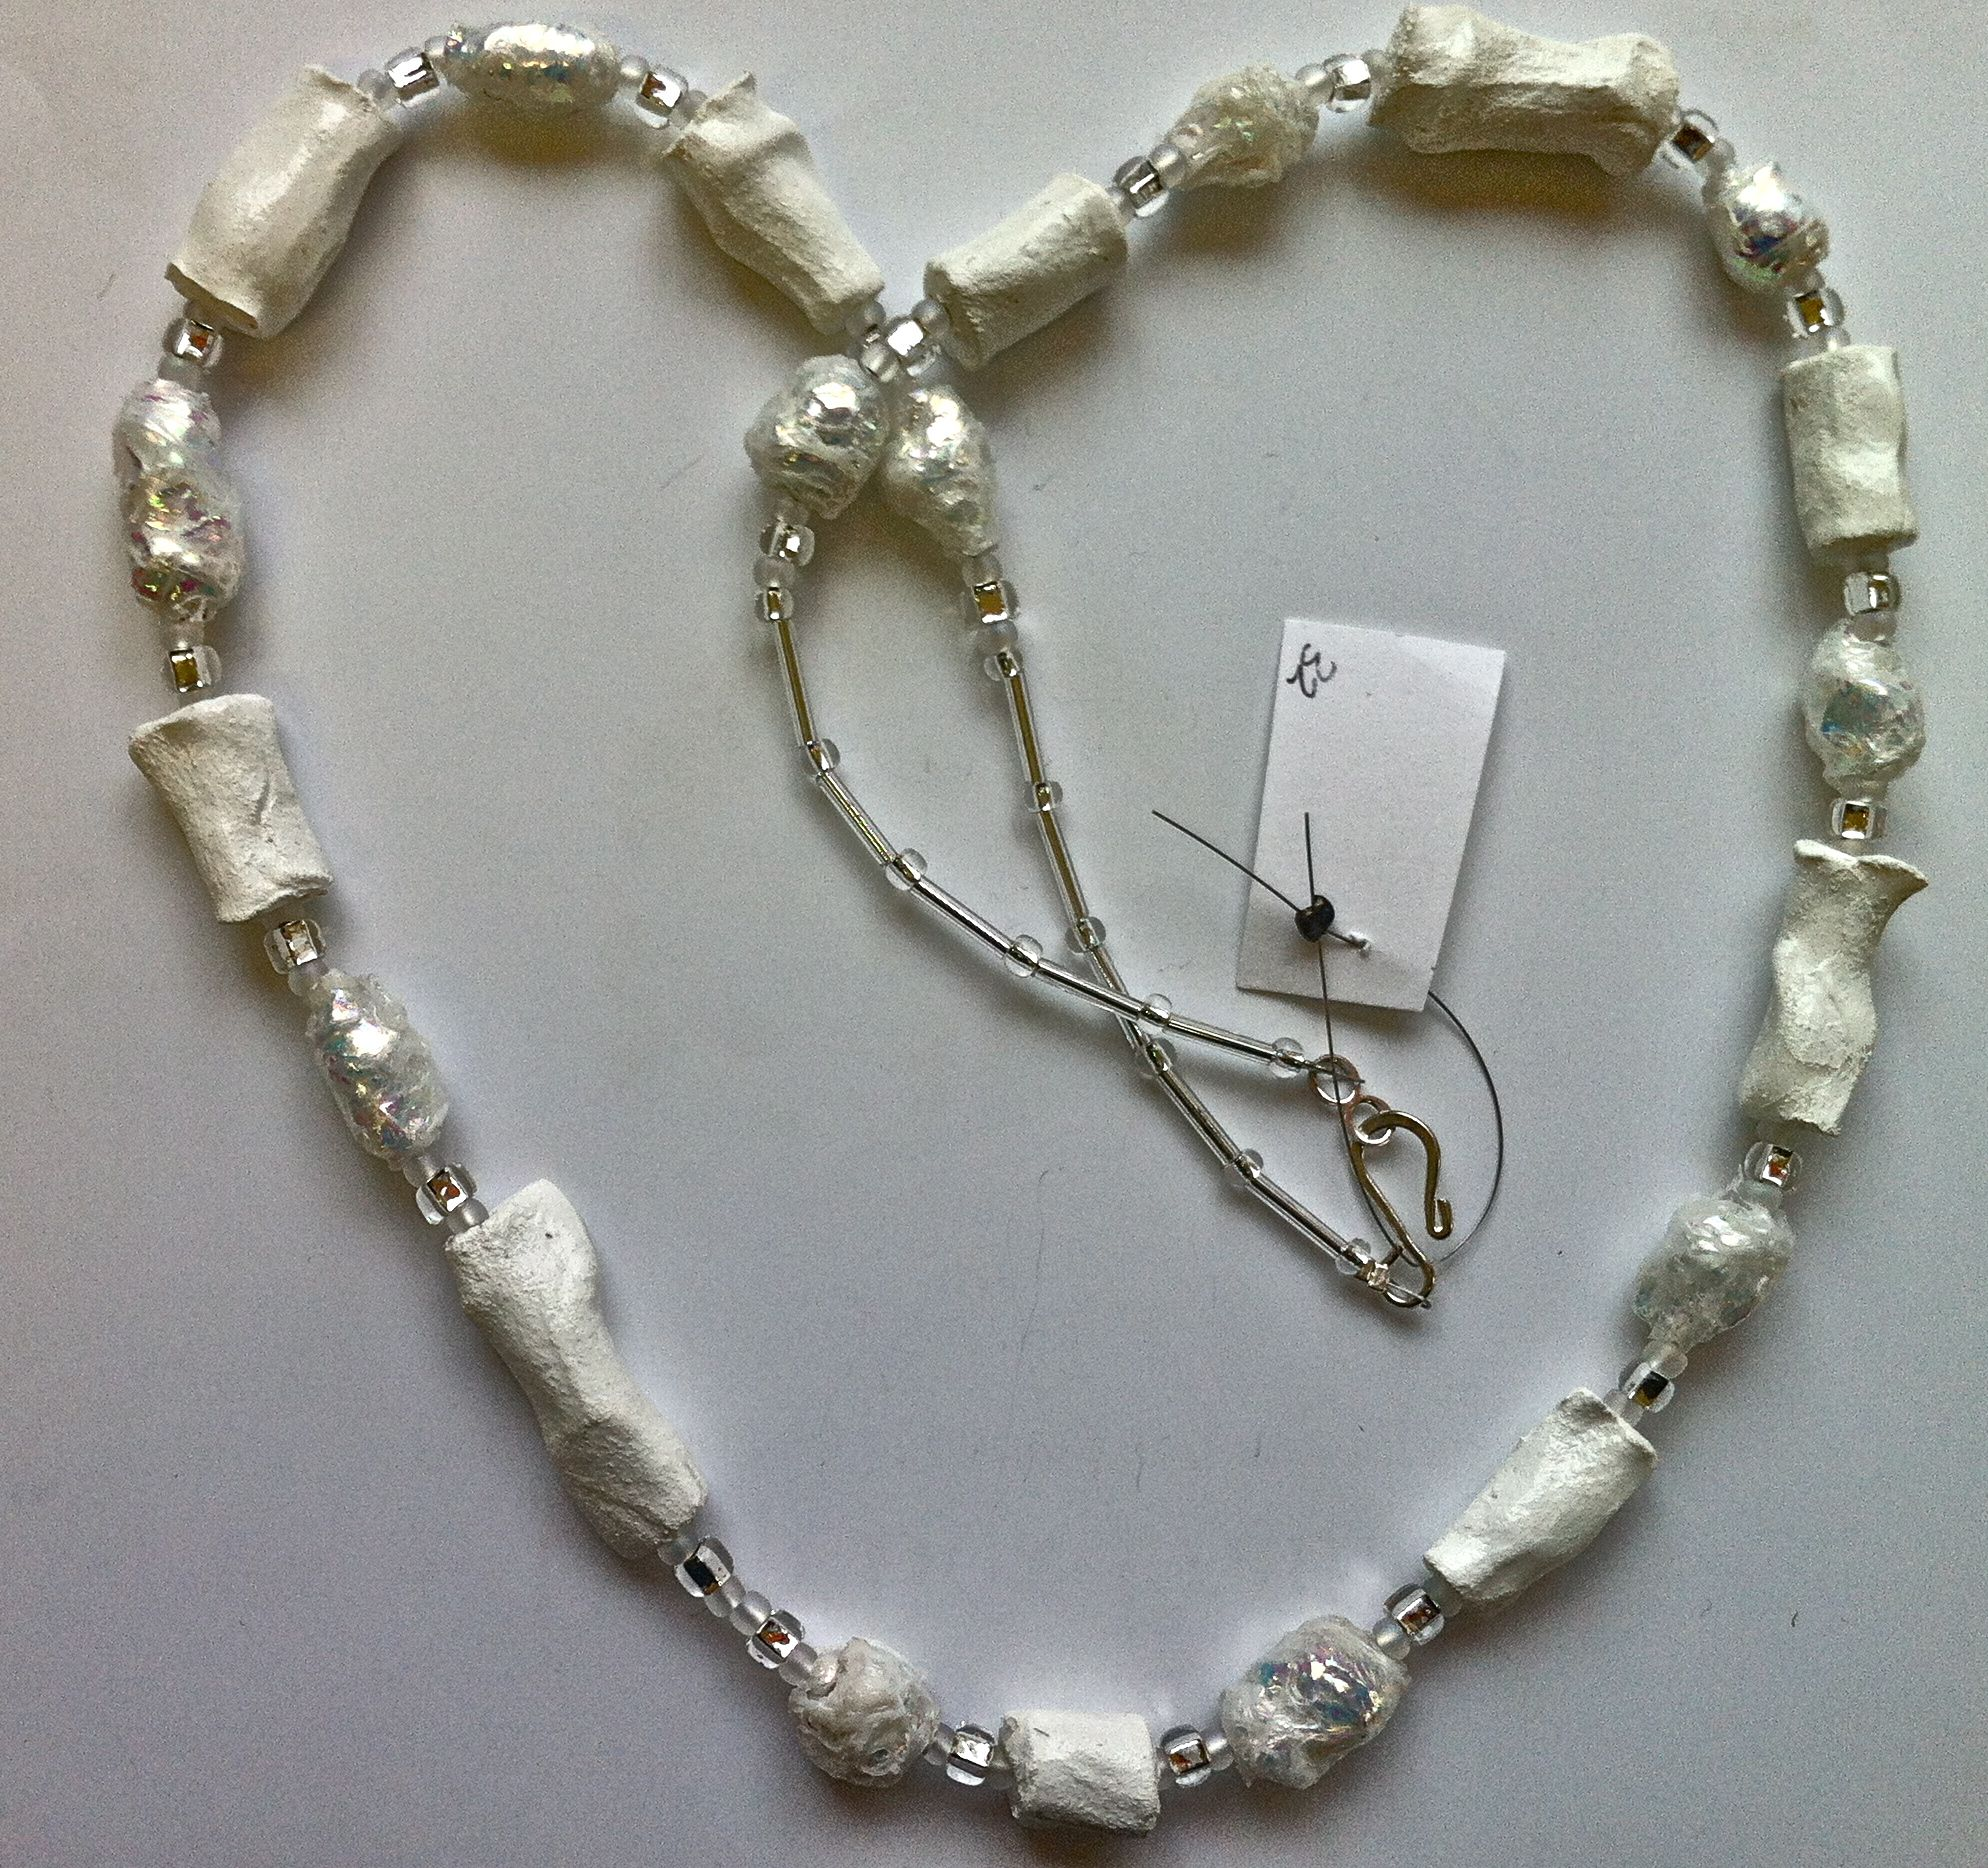 Hilary bravo papier mache necklace jewelry paper for How to make paper mache jewelry